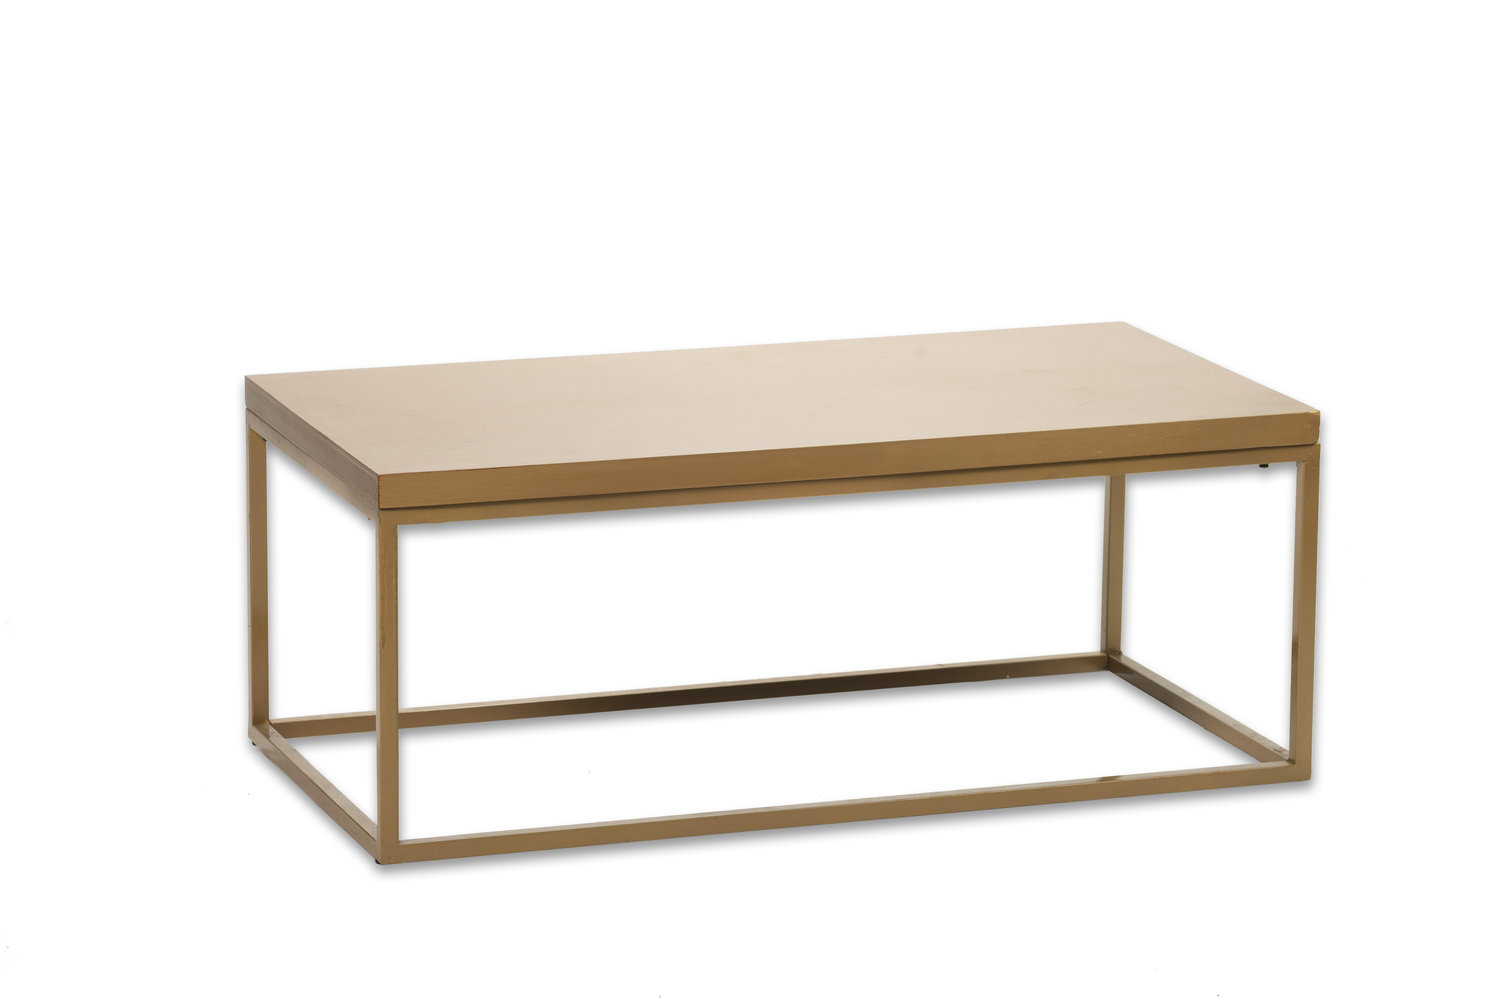 Scoffee Tables Canvas Event Furniture